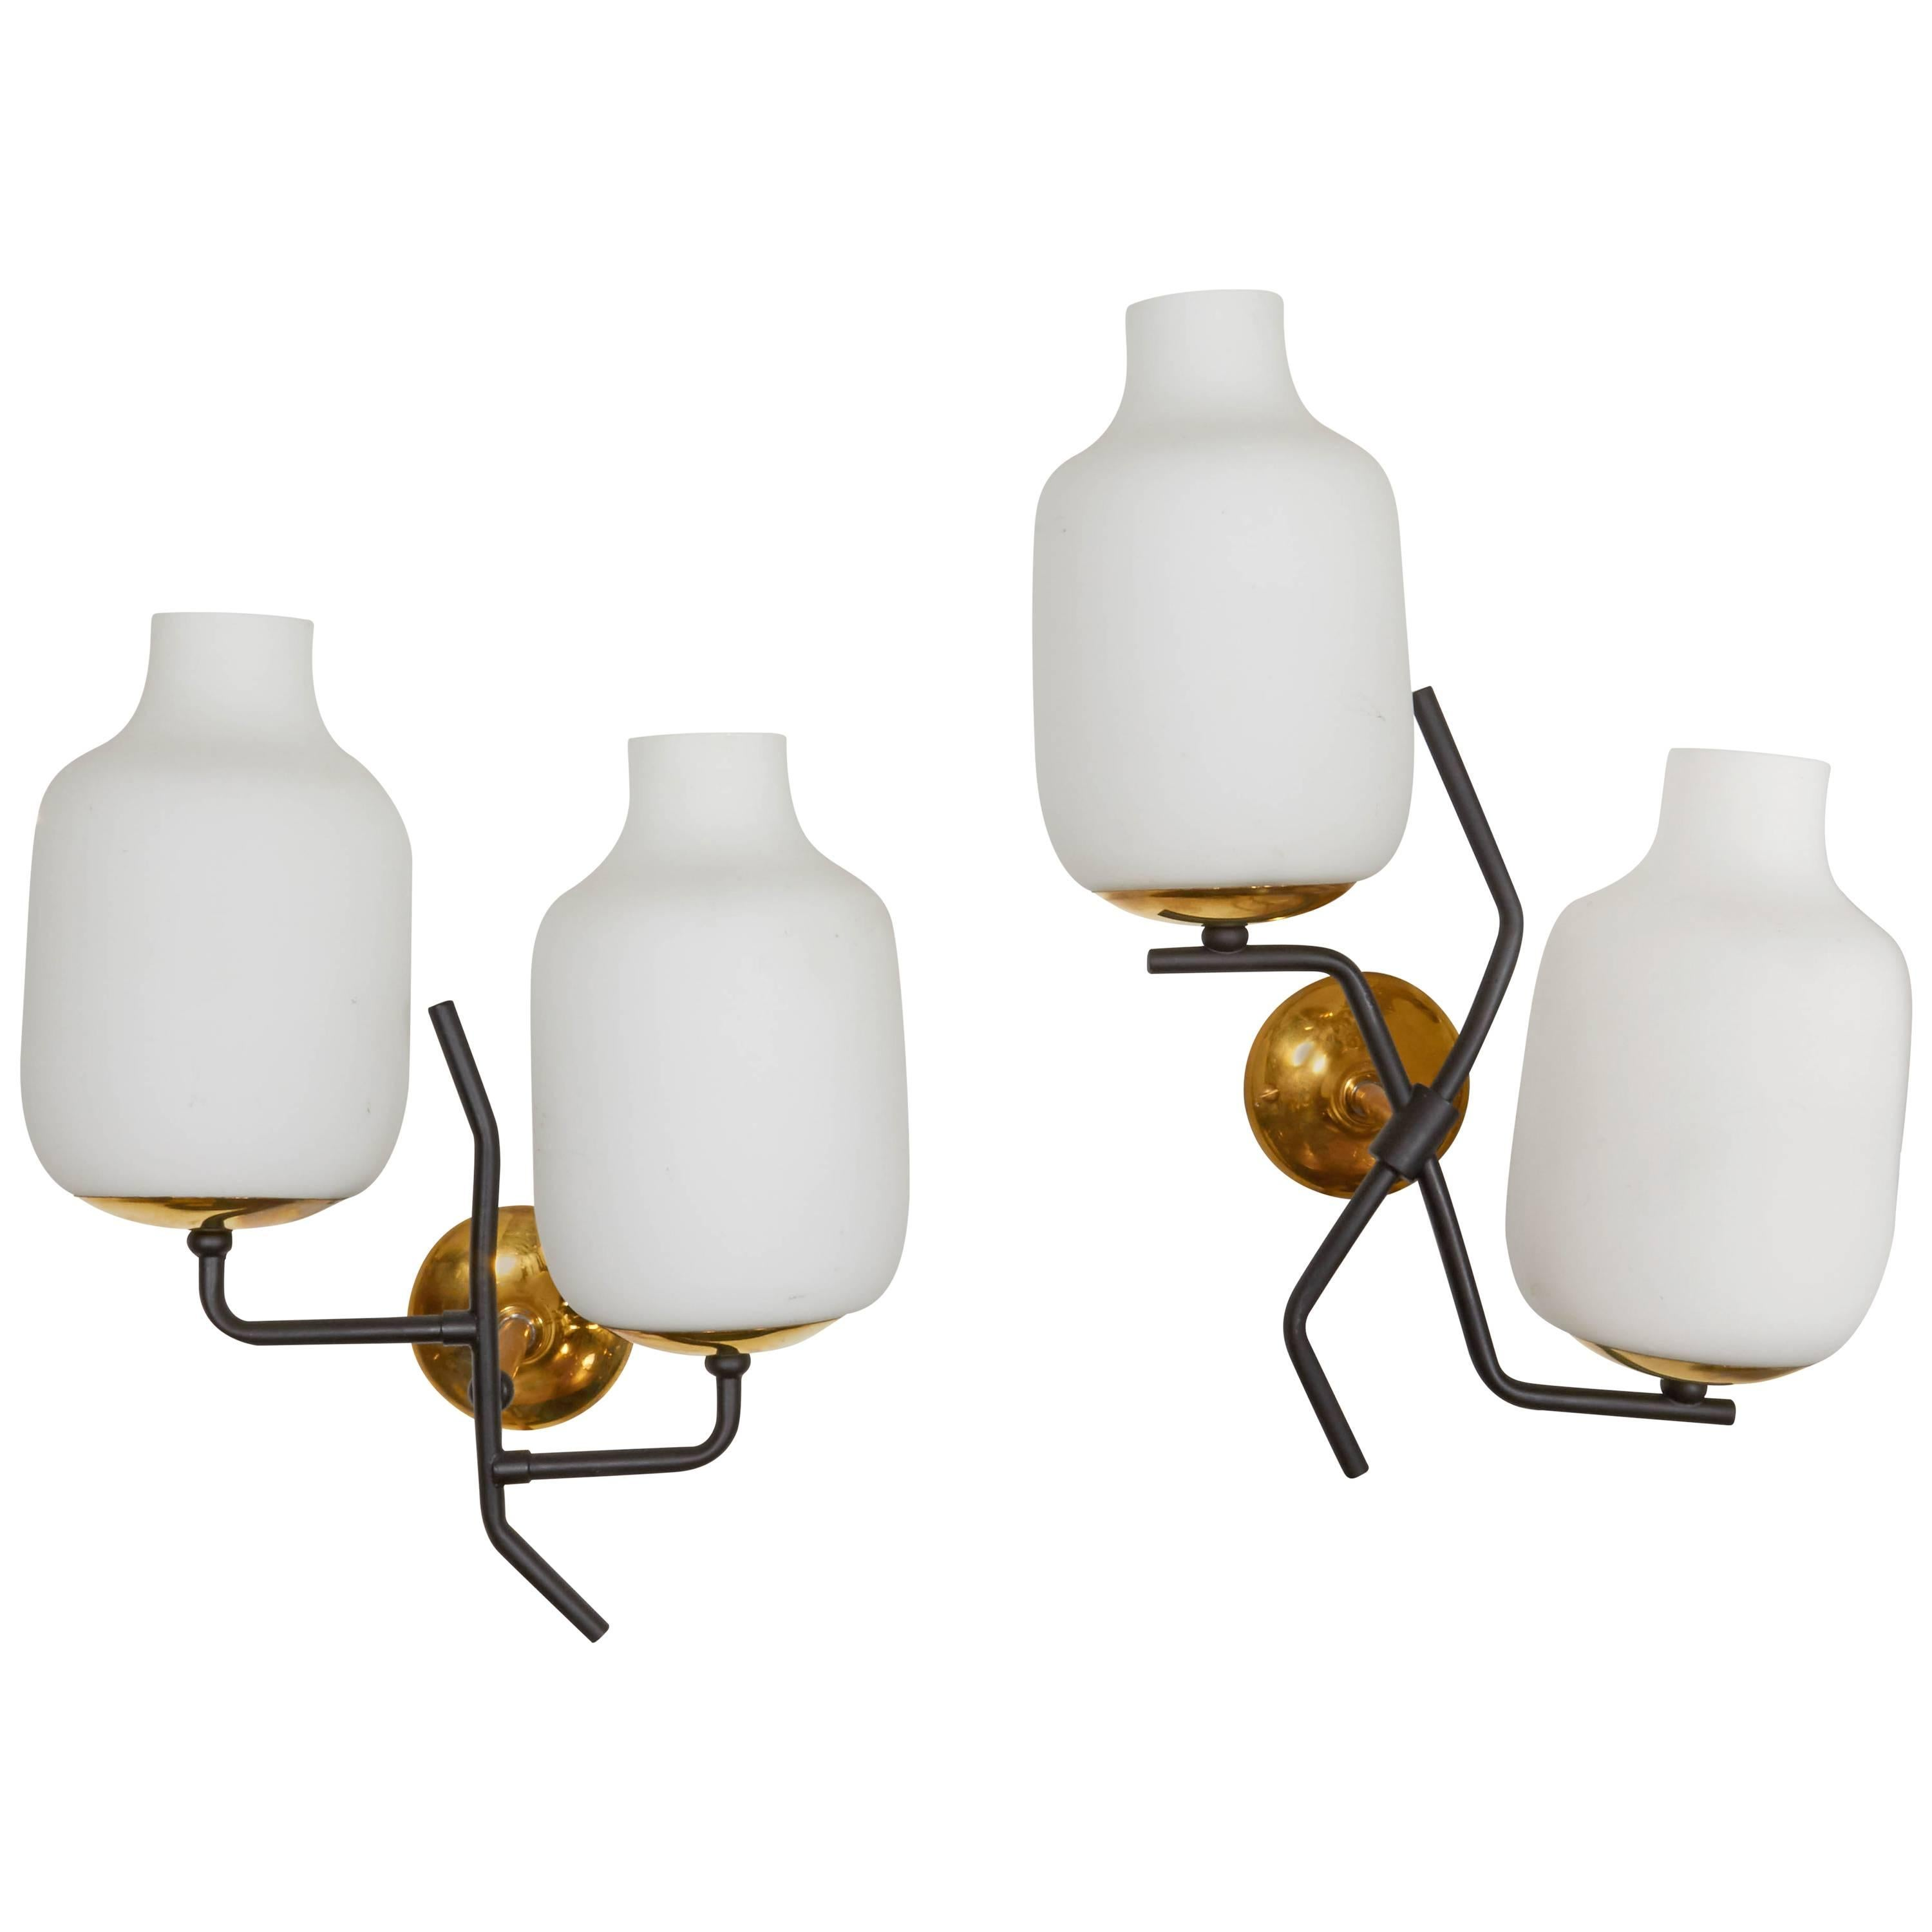 Pair of Stilnovo Branched Wall Sconces